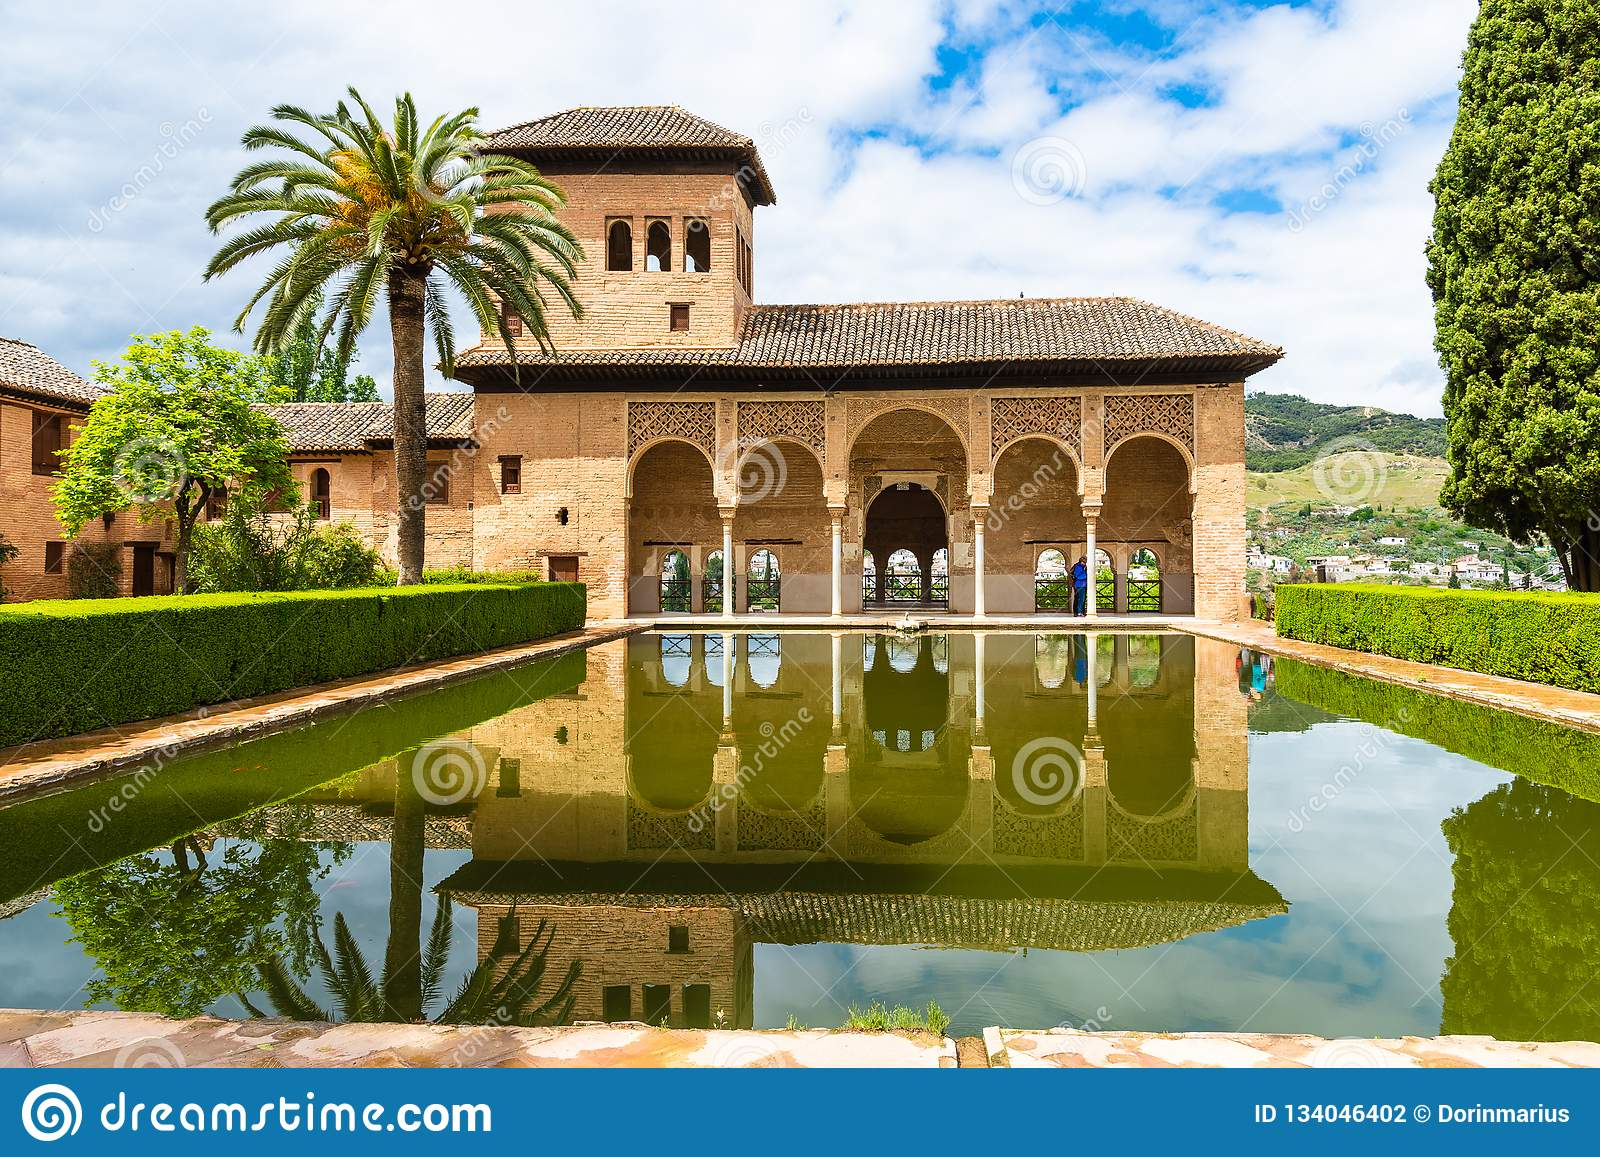 The Partal garden and pool, Alhambra Palace, Granada, Spain